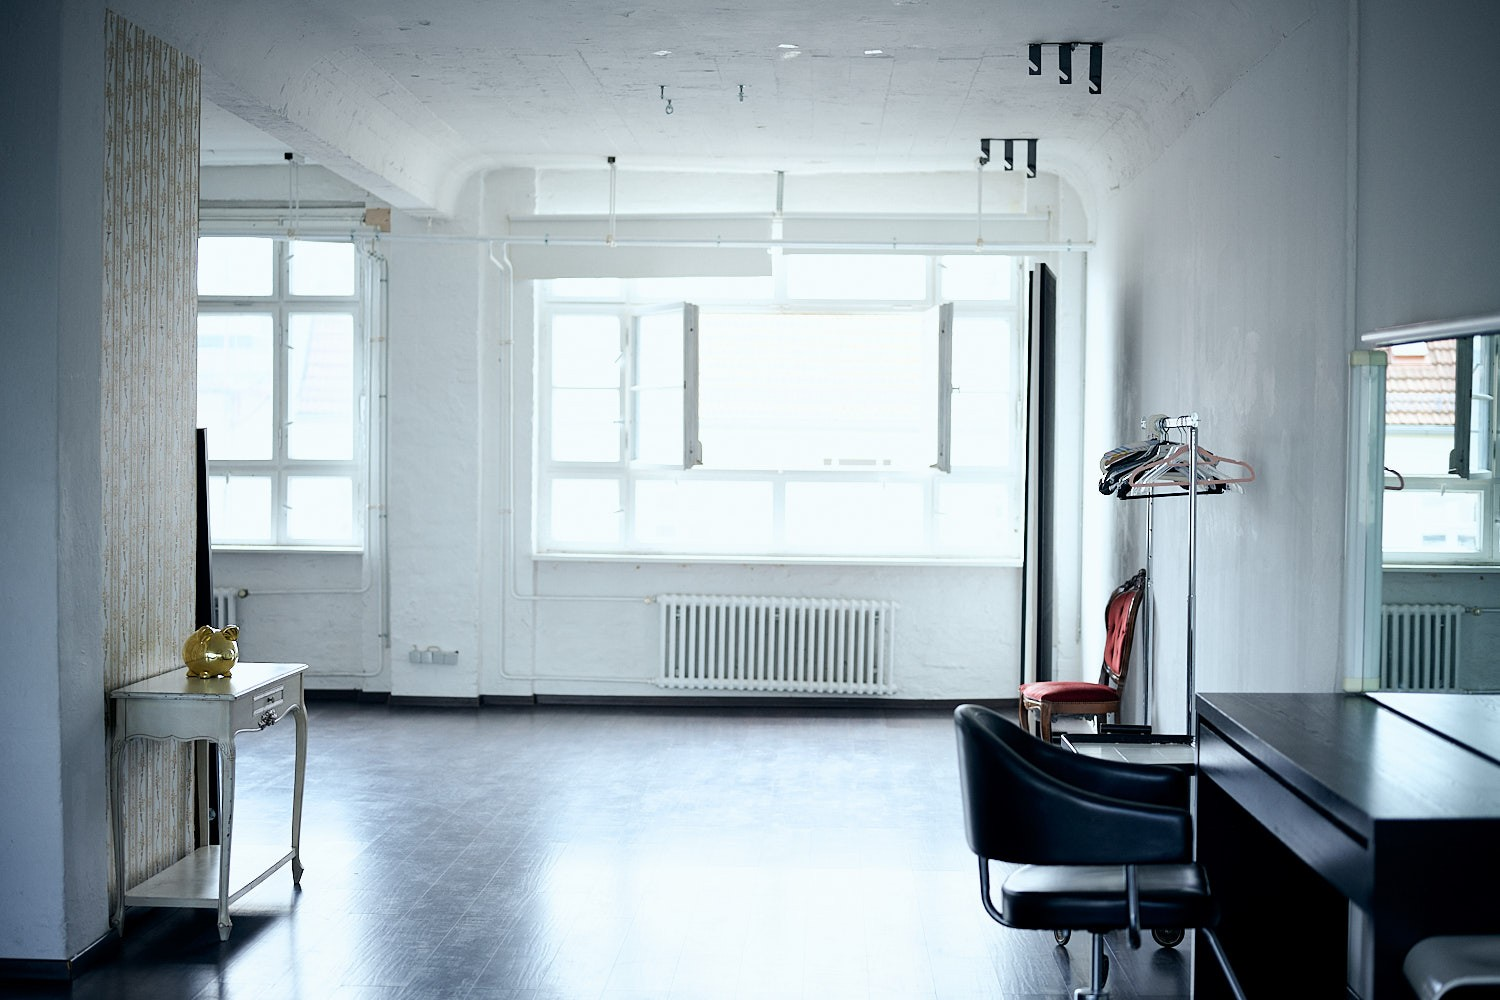 Fotostudio Berlin